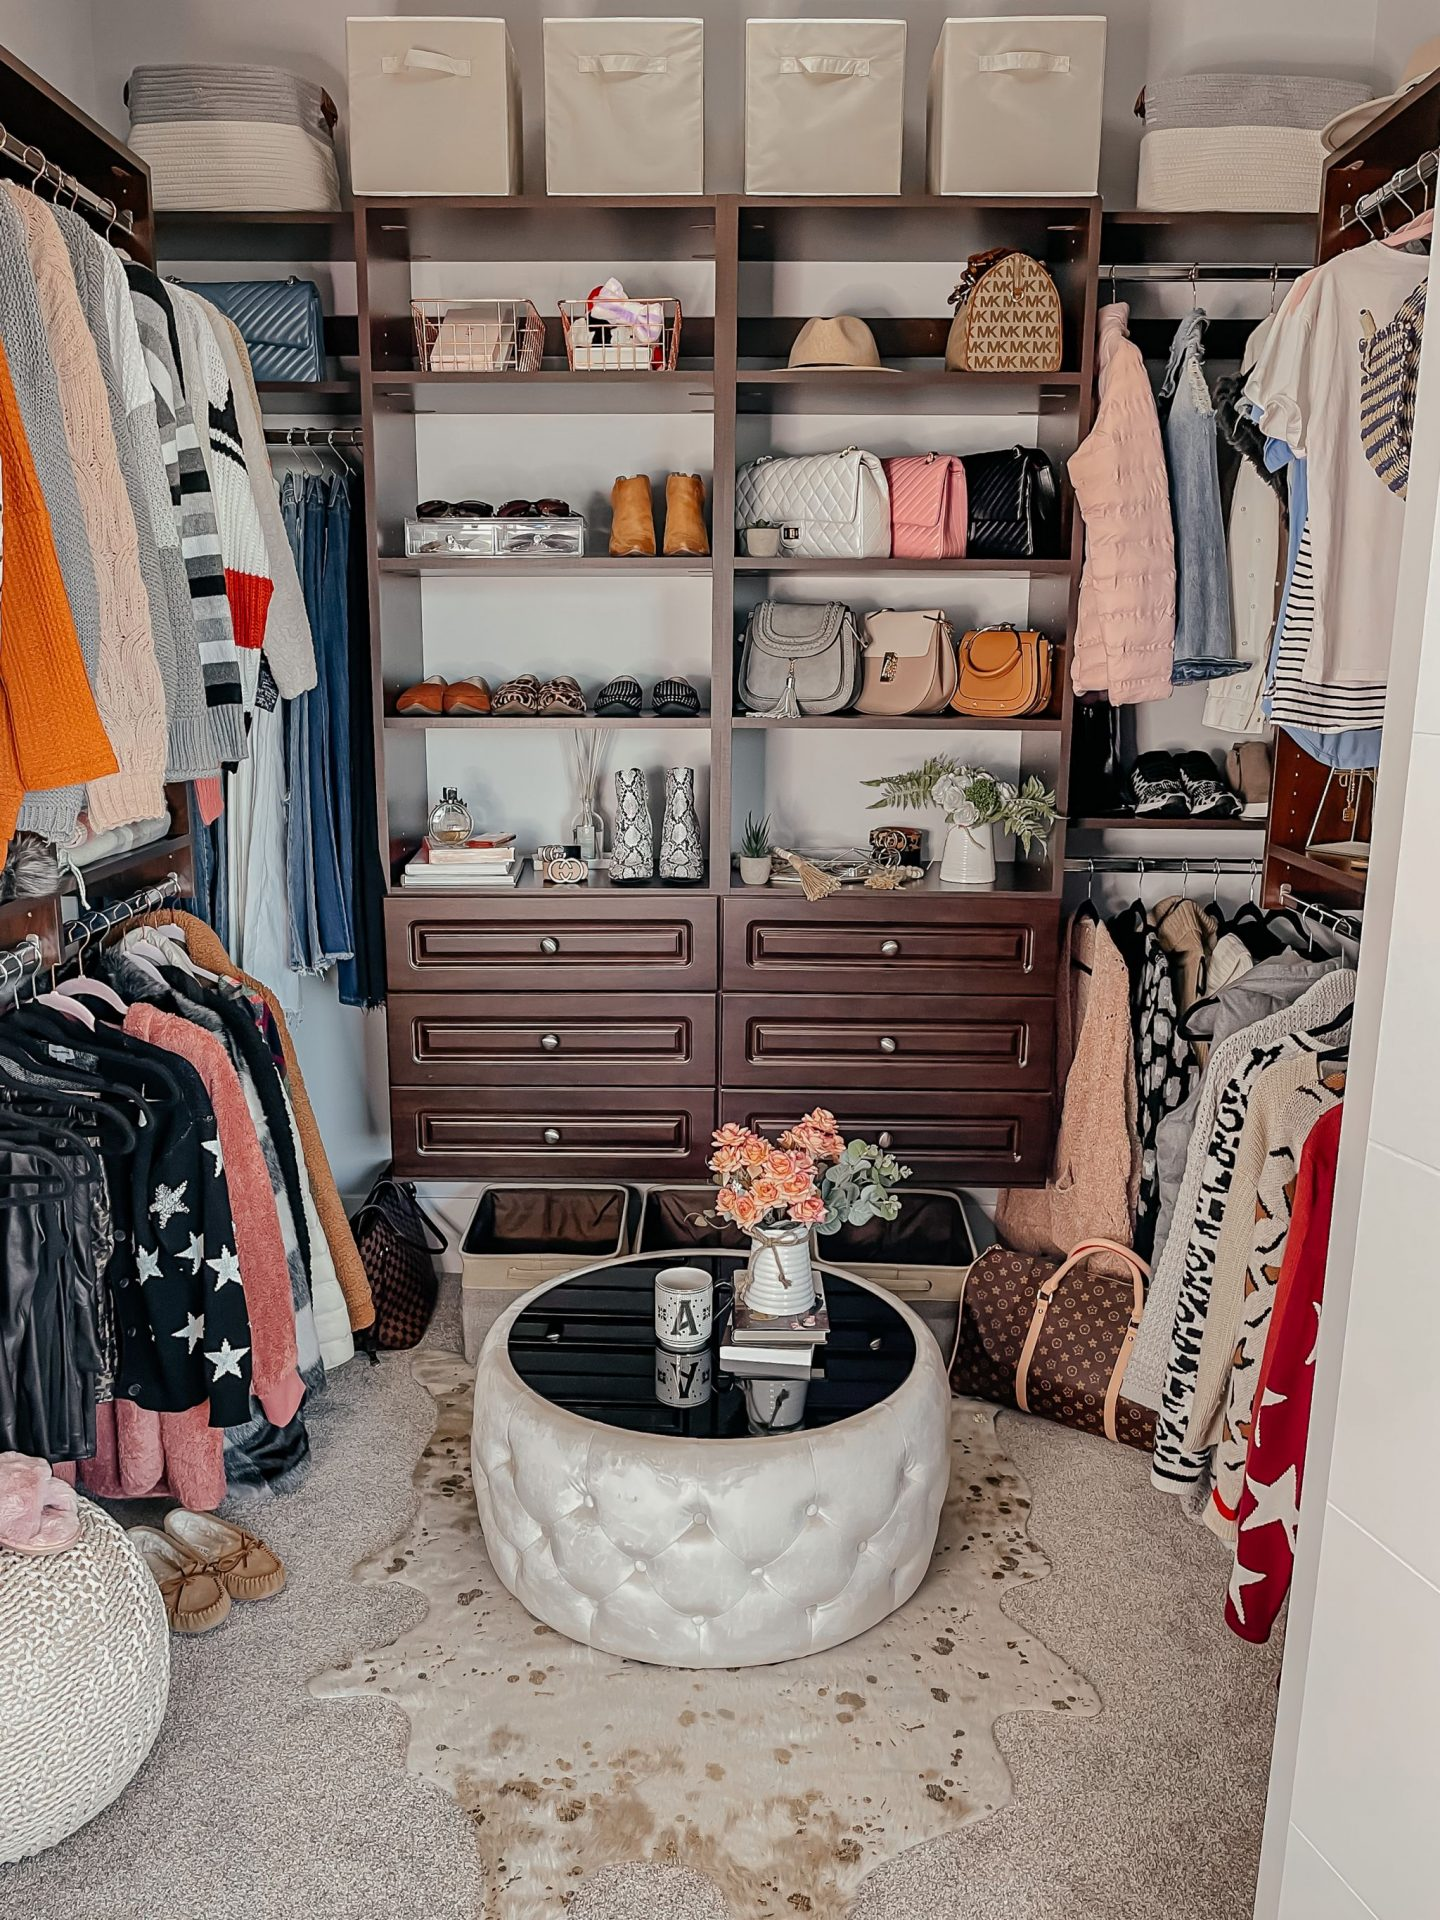 Amazon Closet Storage and Organization Solutions